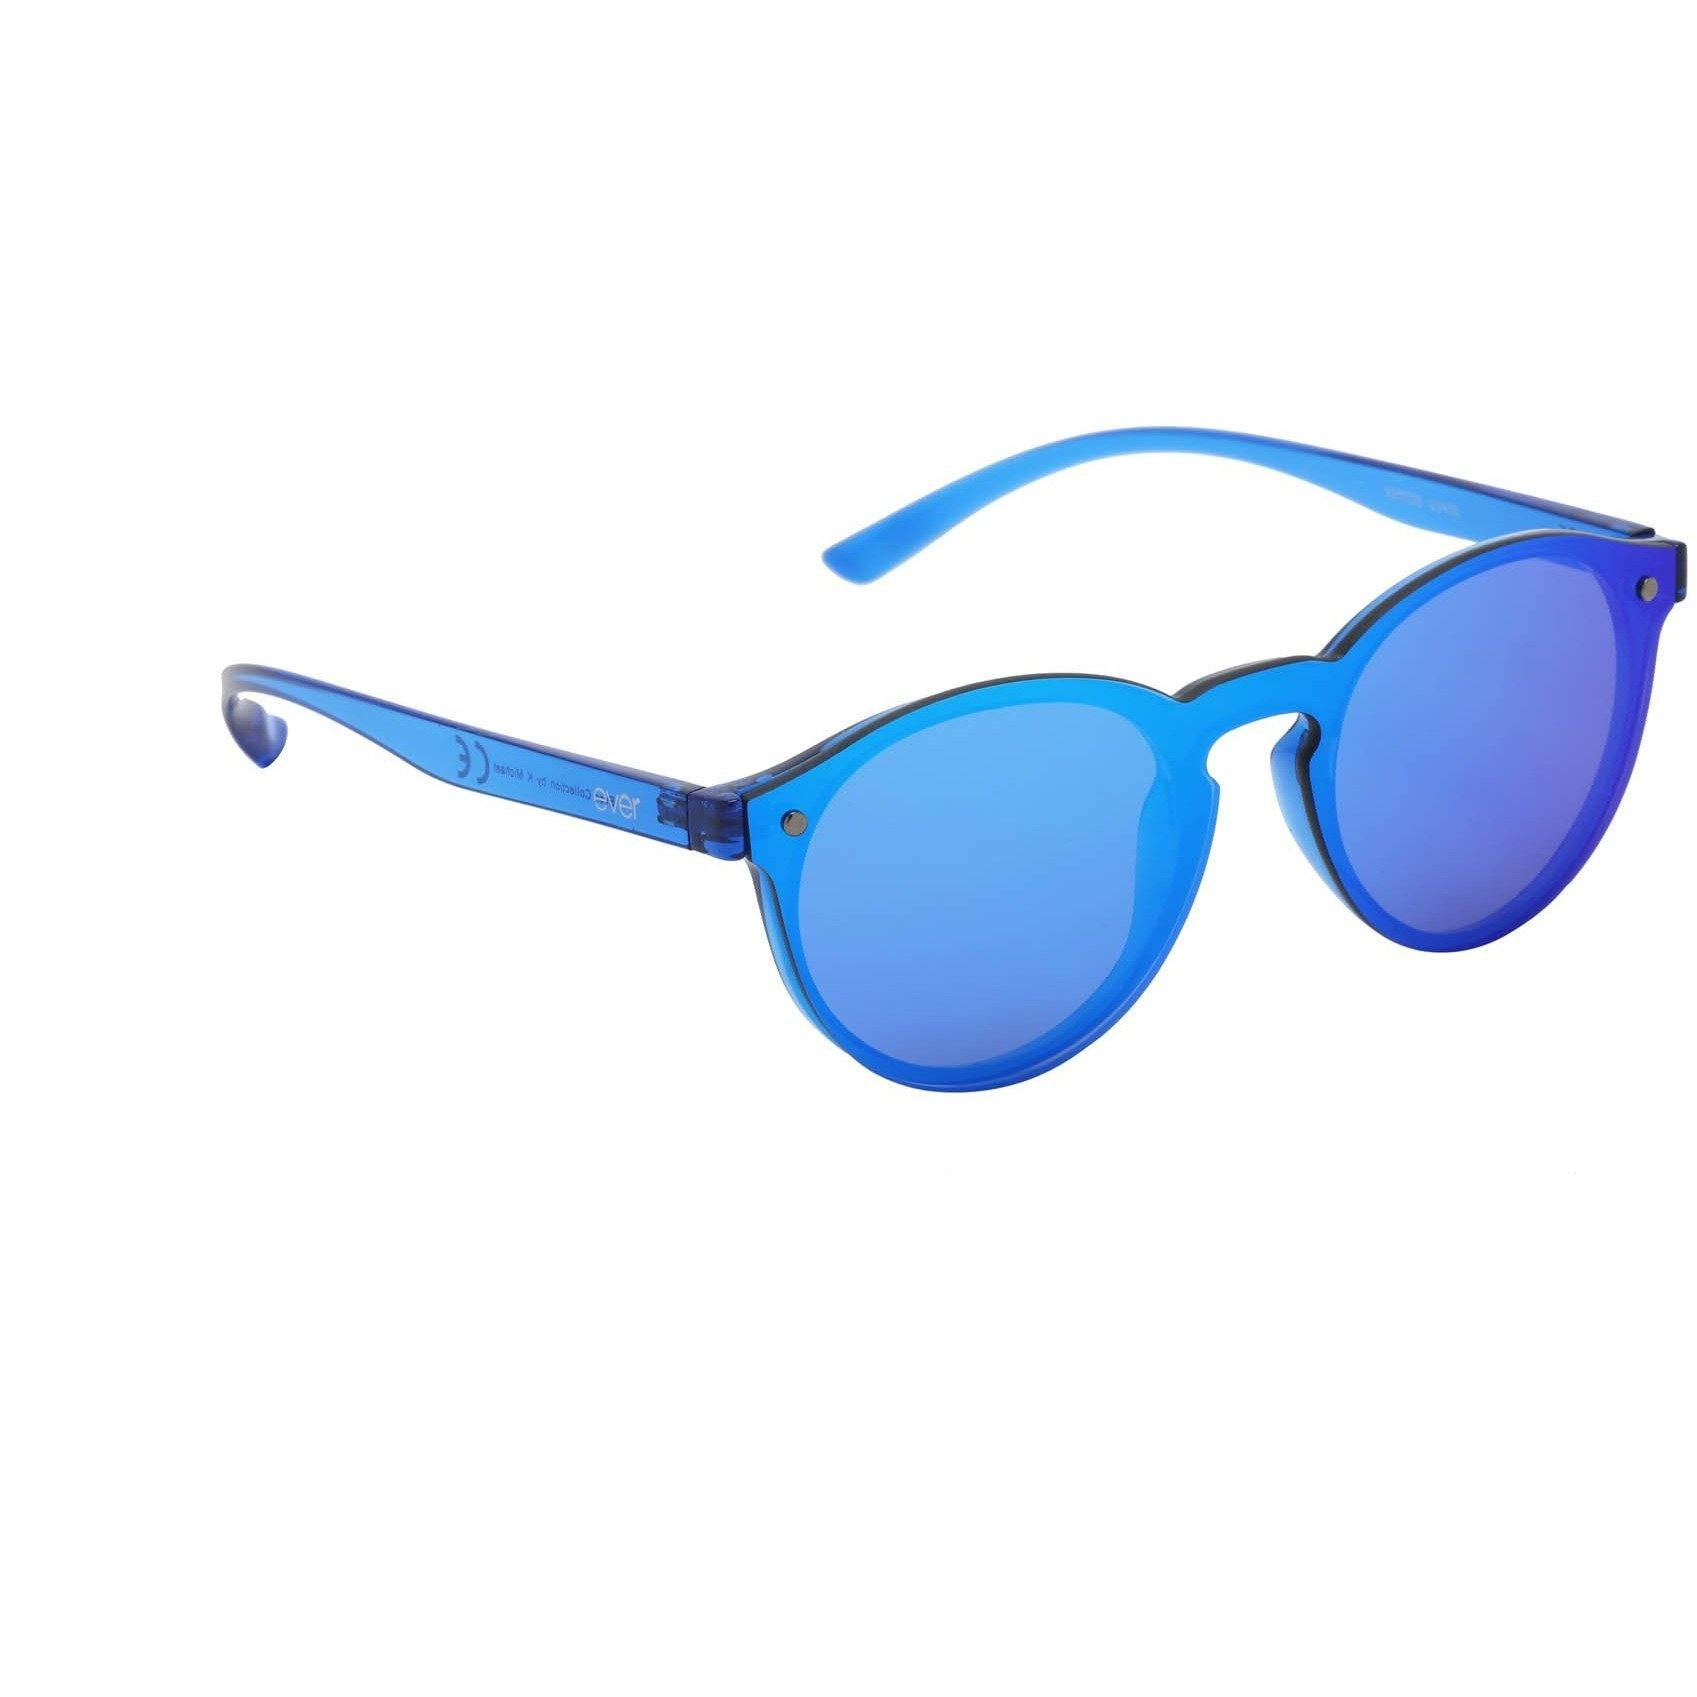 "Revo Coated Collection Designer Sunglasses Model ""Simba Tail"" Blue By: The Ever Collection"